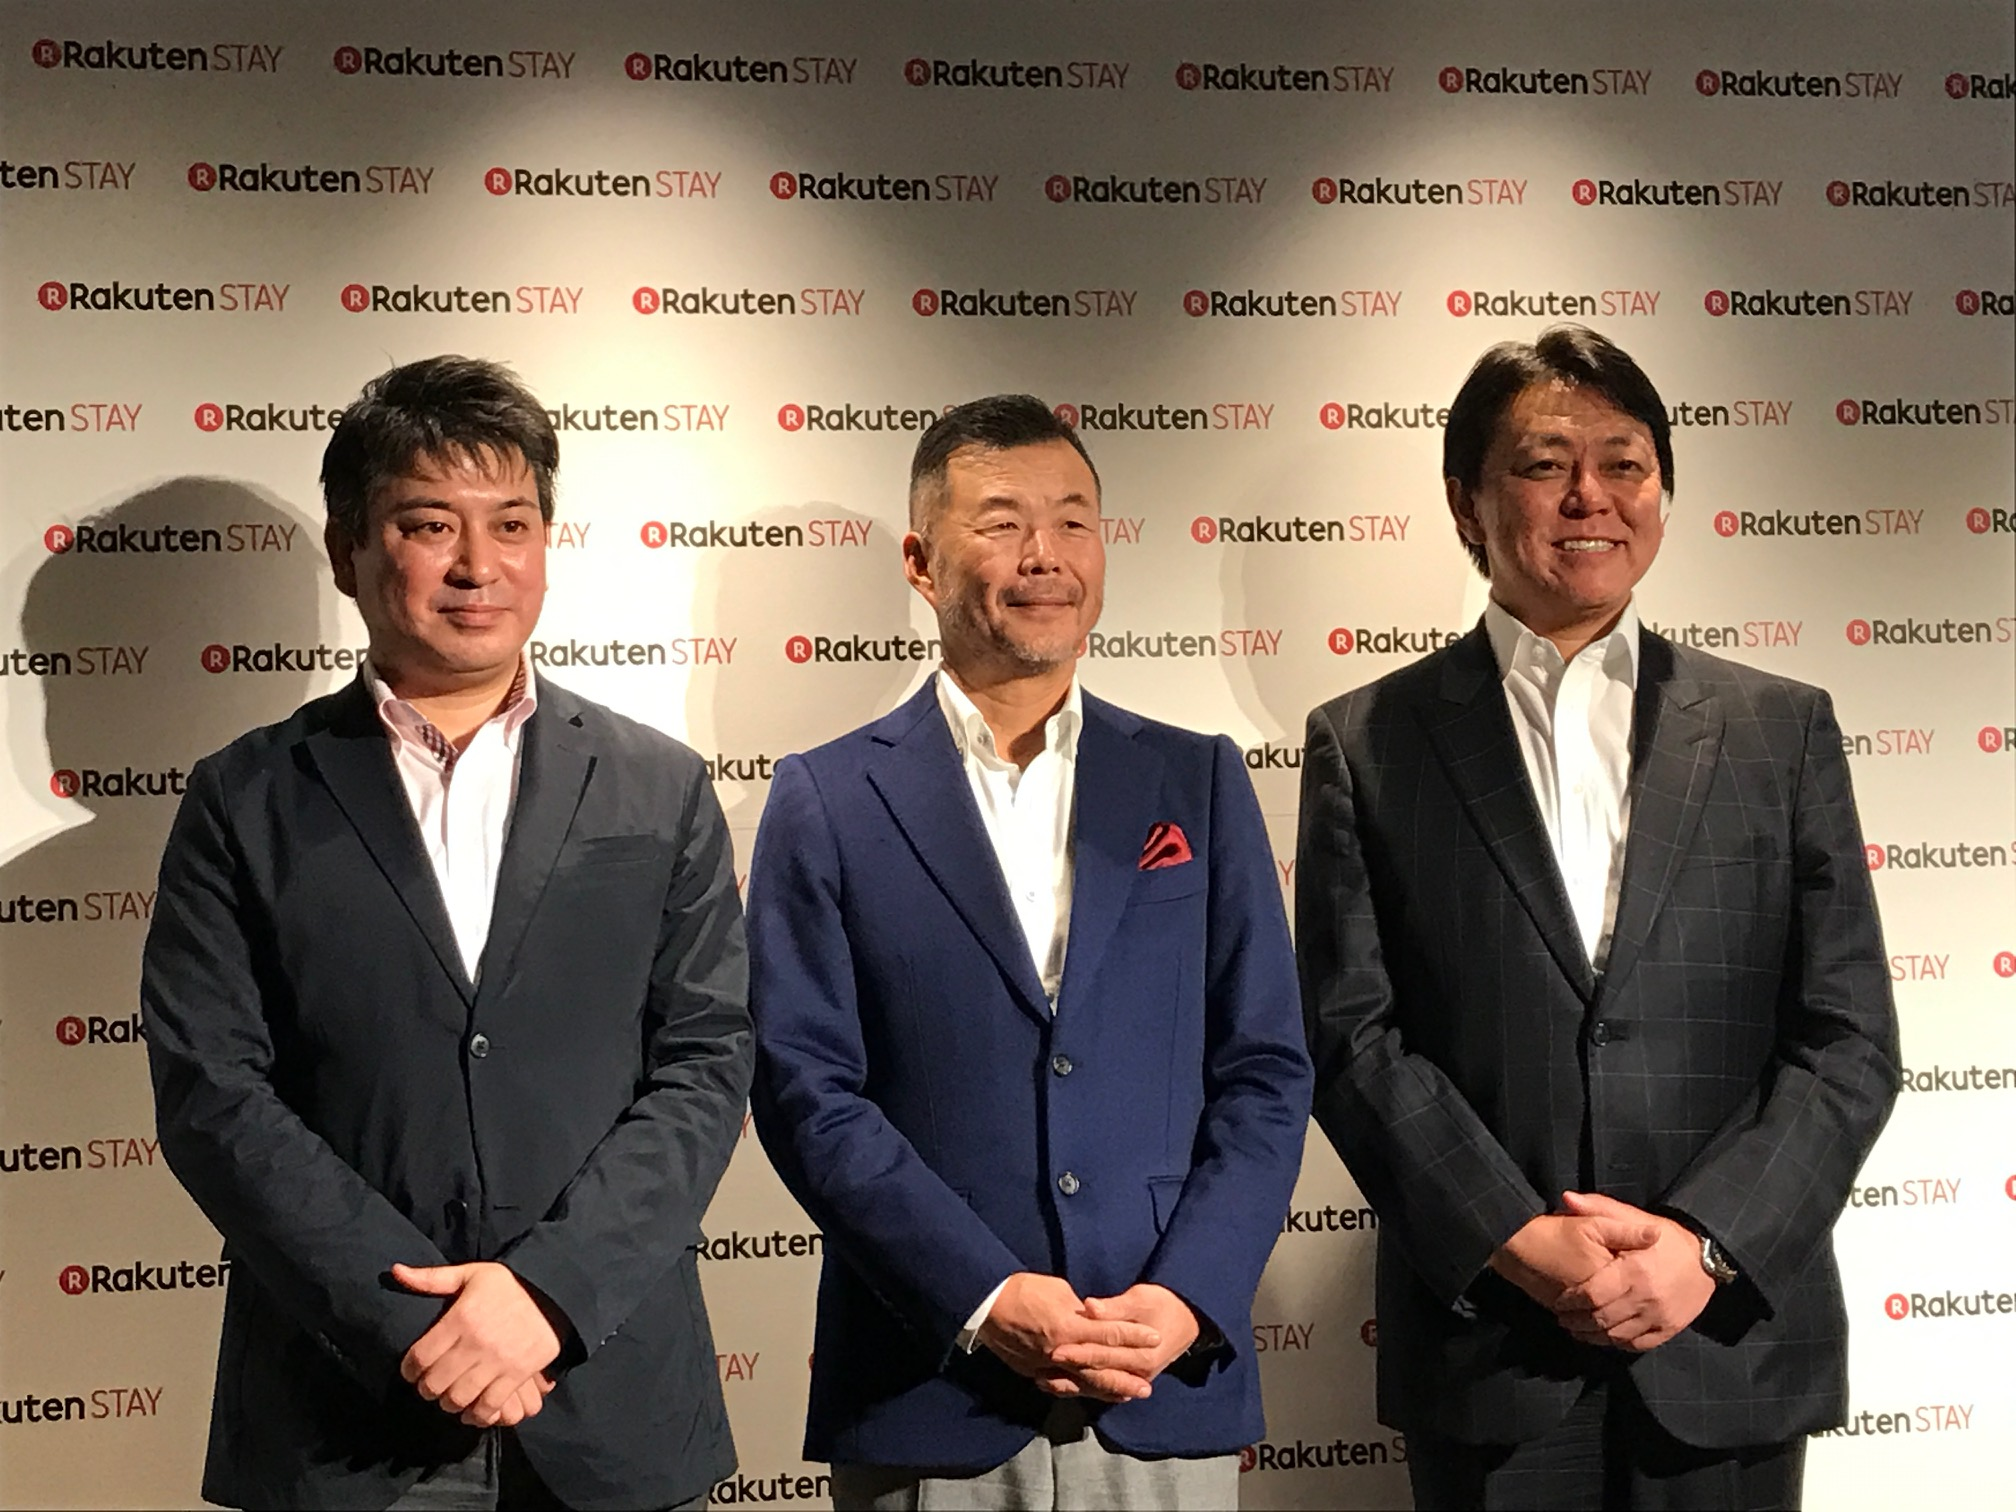 Rakuten launches Rakuten STAY branding & outsourcing services for private accommodation owners